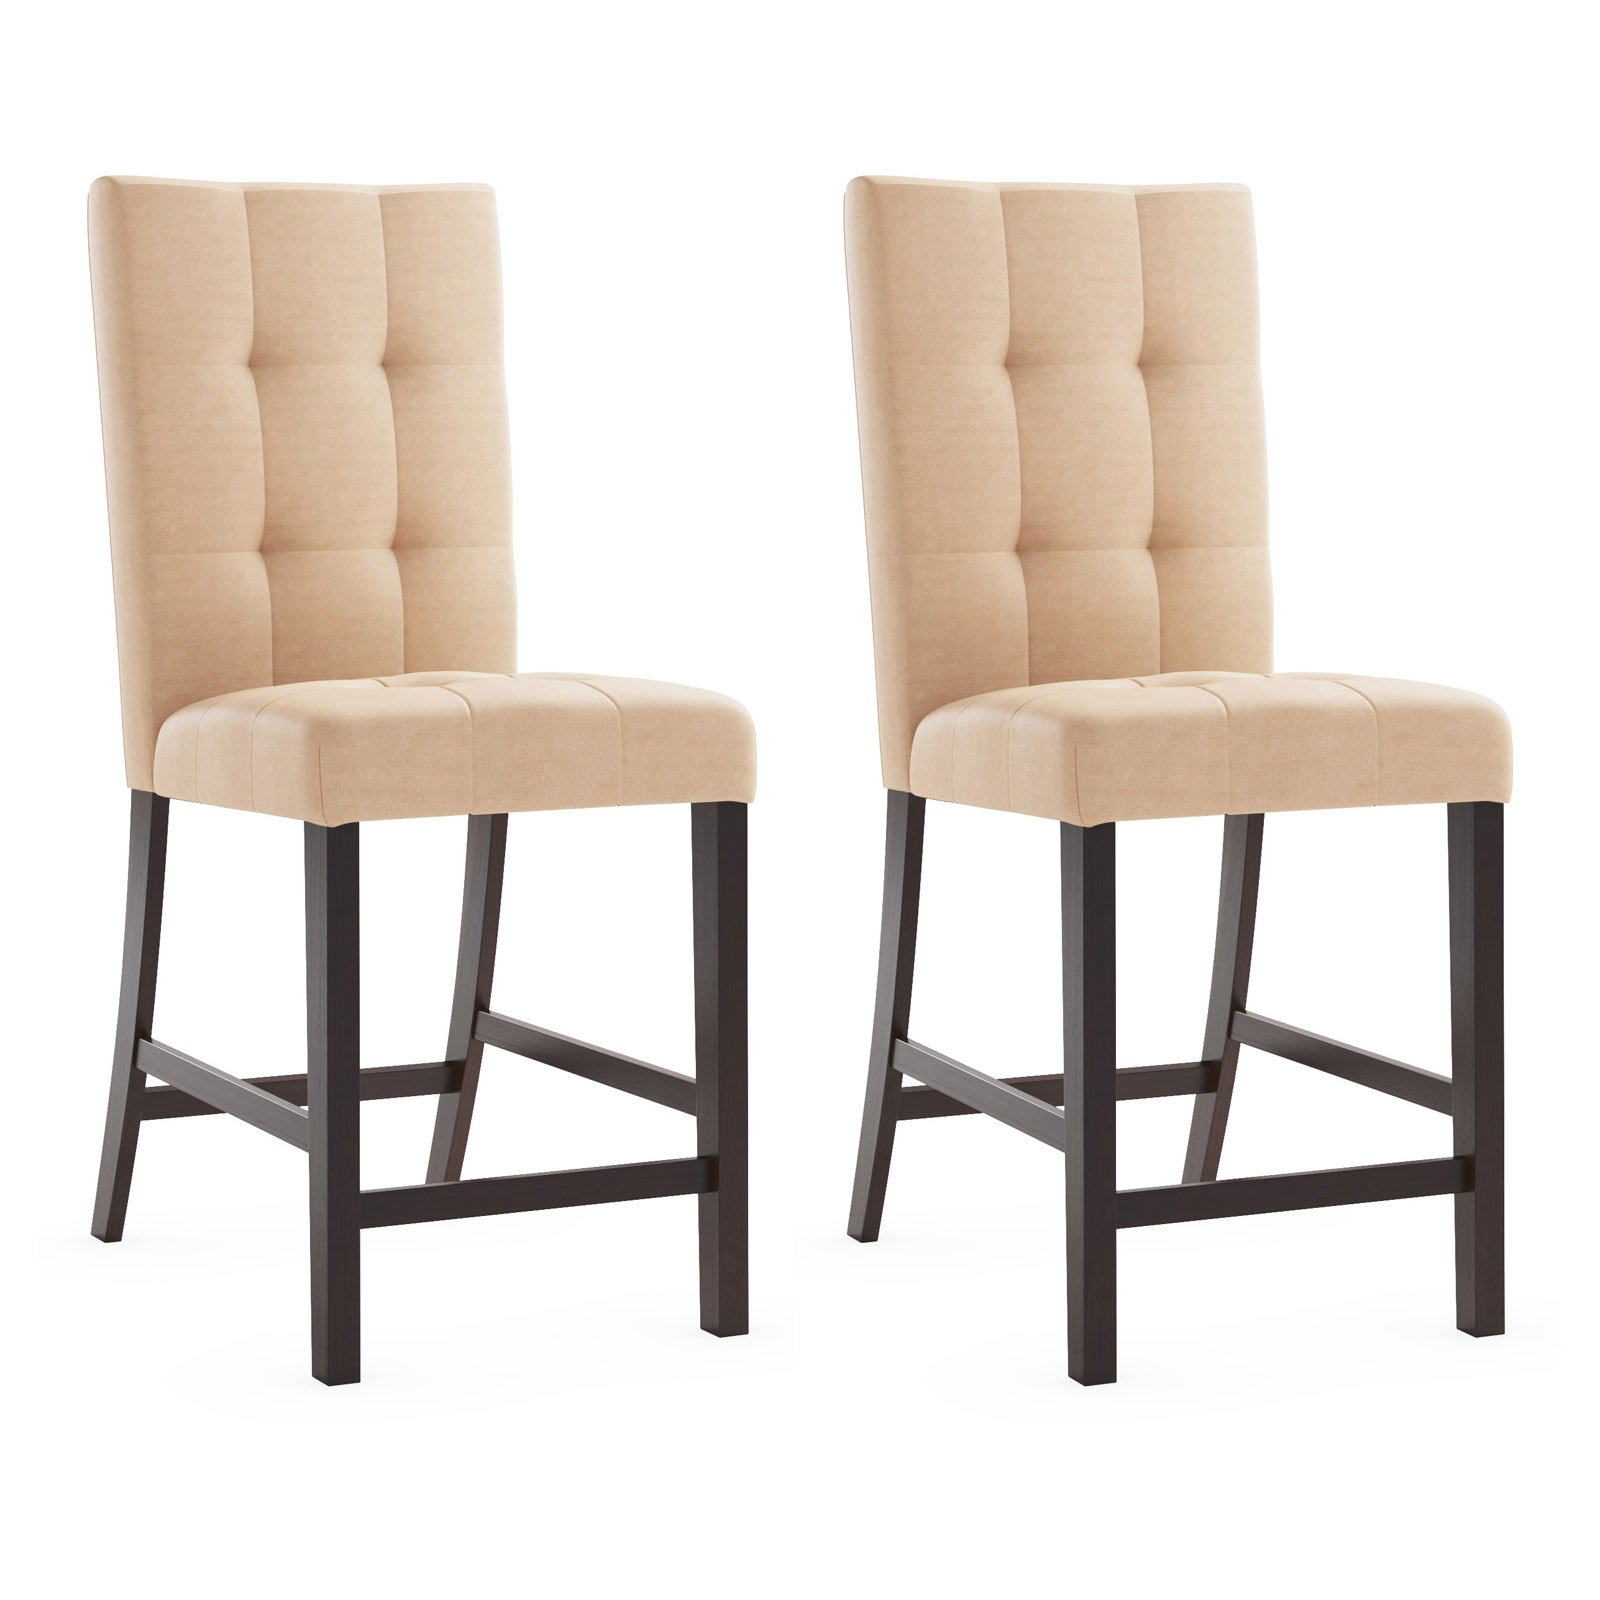 Christopher Knight Home Roland Red Bonded Leather Dining Chairs by